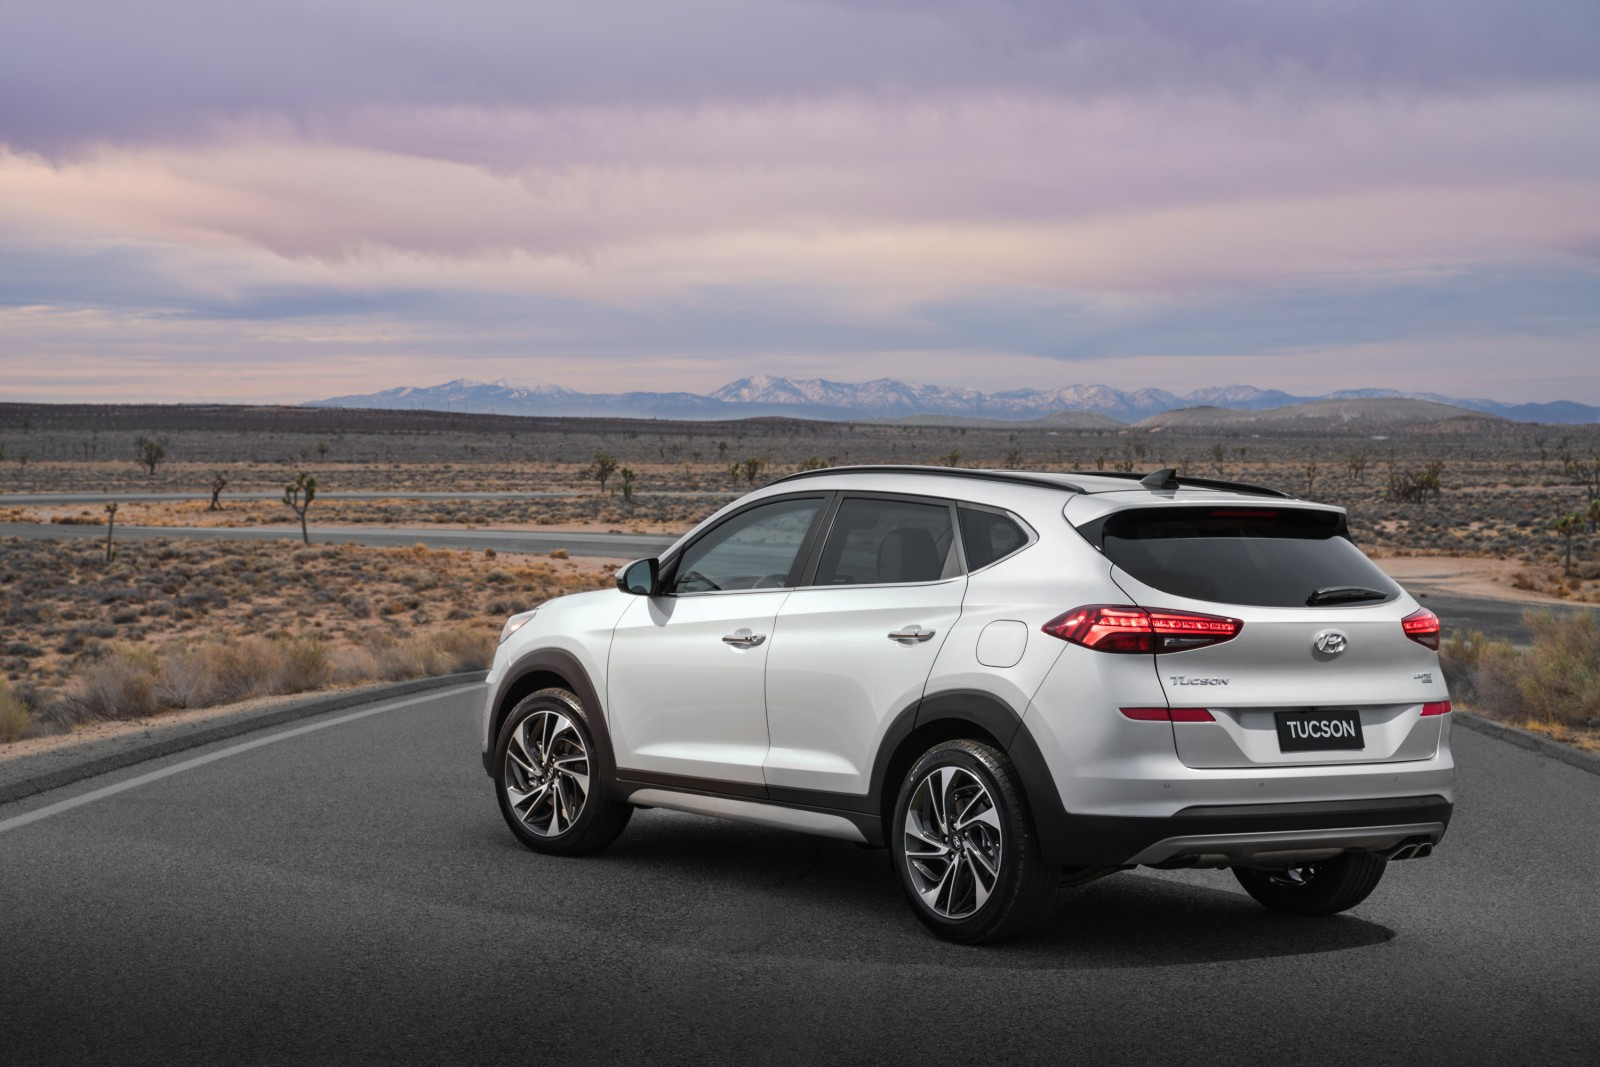 2019 Hyundai Tucson: Refreshed, Styling, Price >> Hyundai Tucson Receives Significant Refresh For 2019 Model